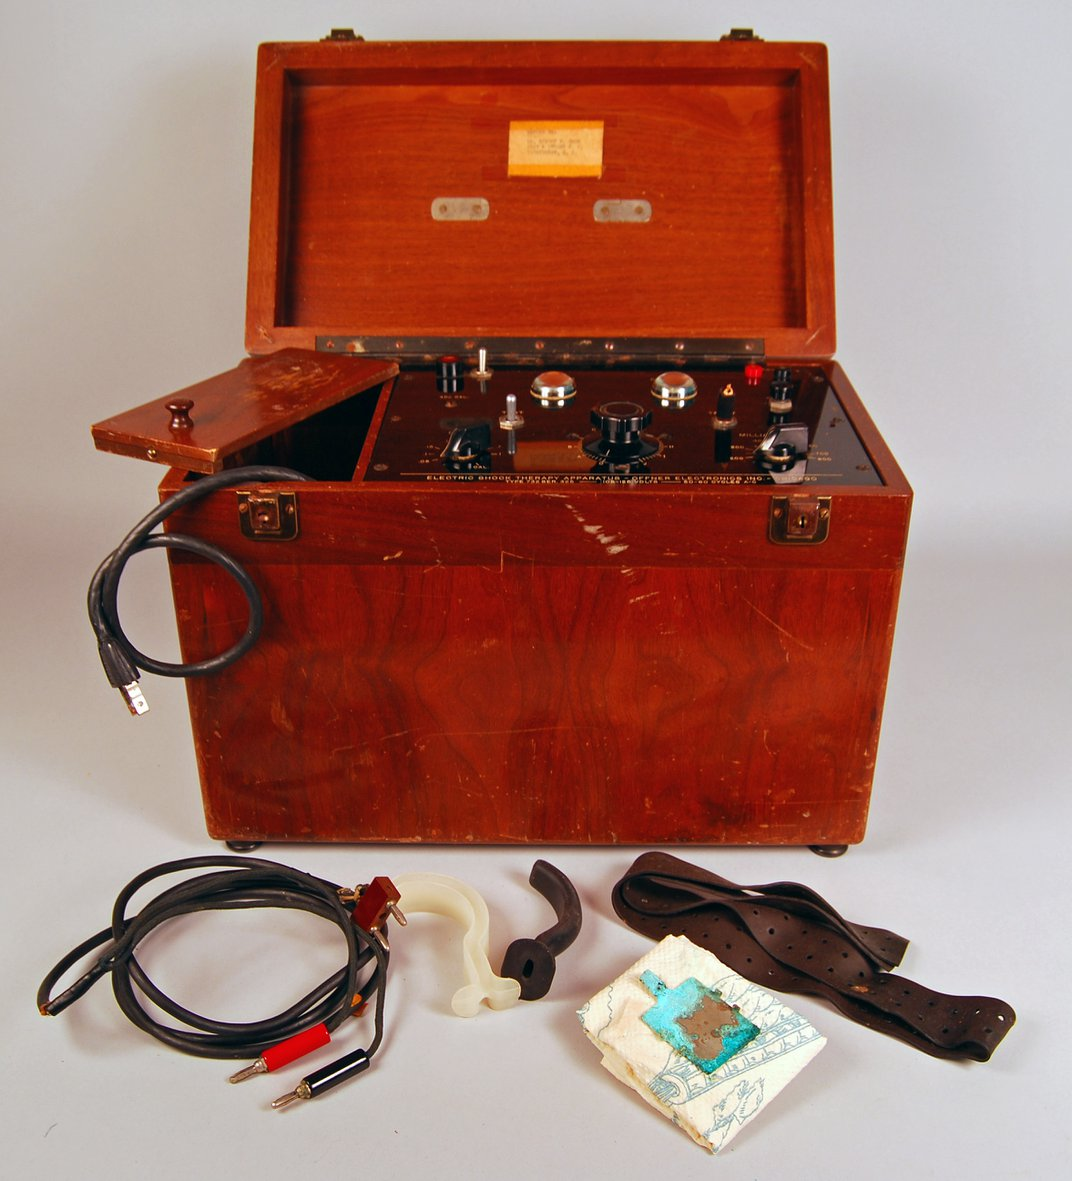 Red wooden electroshock machine with wires and other accessories